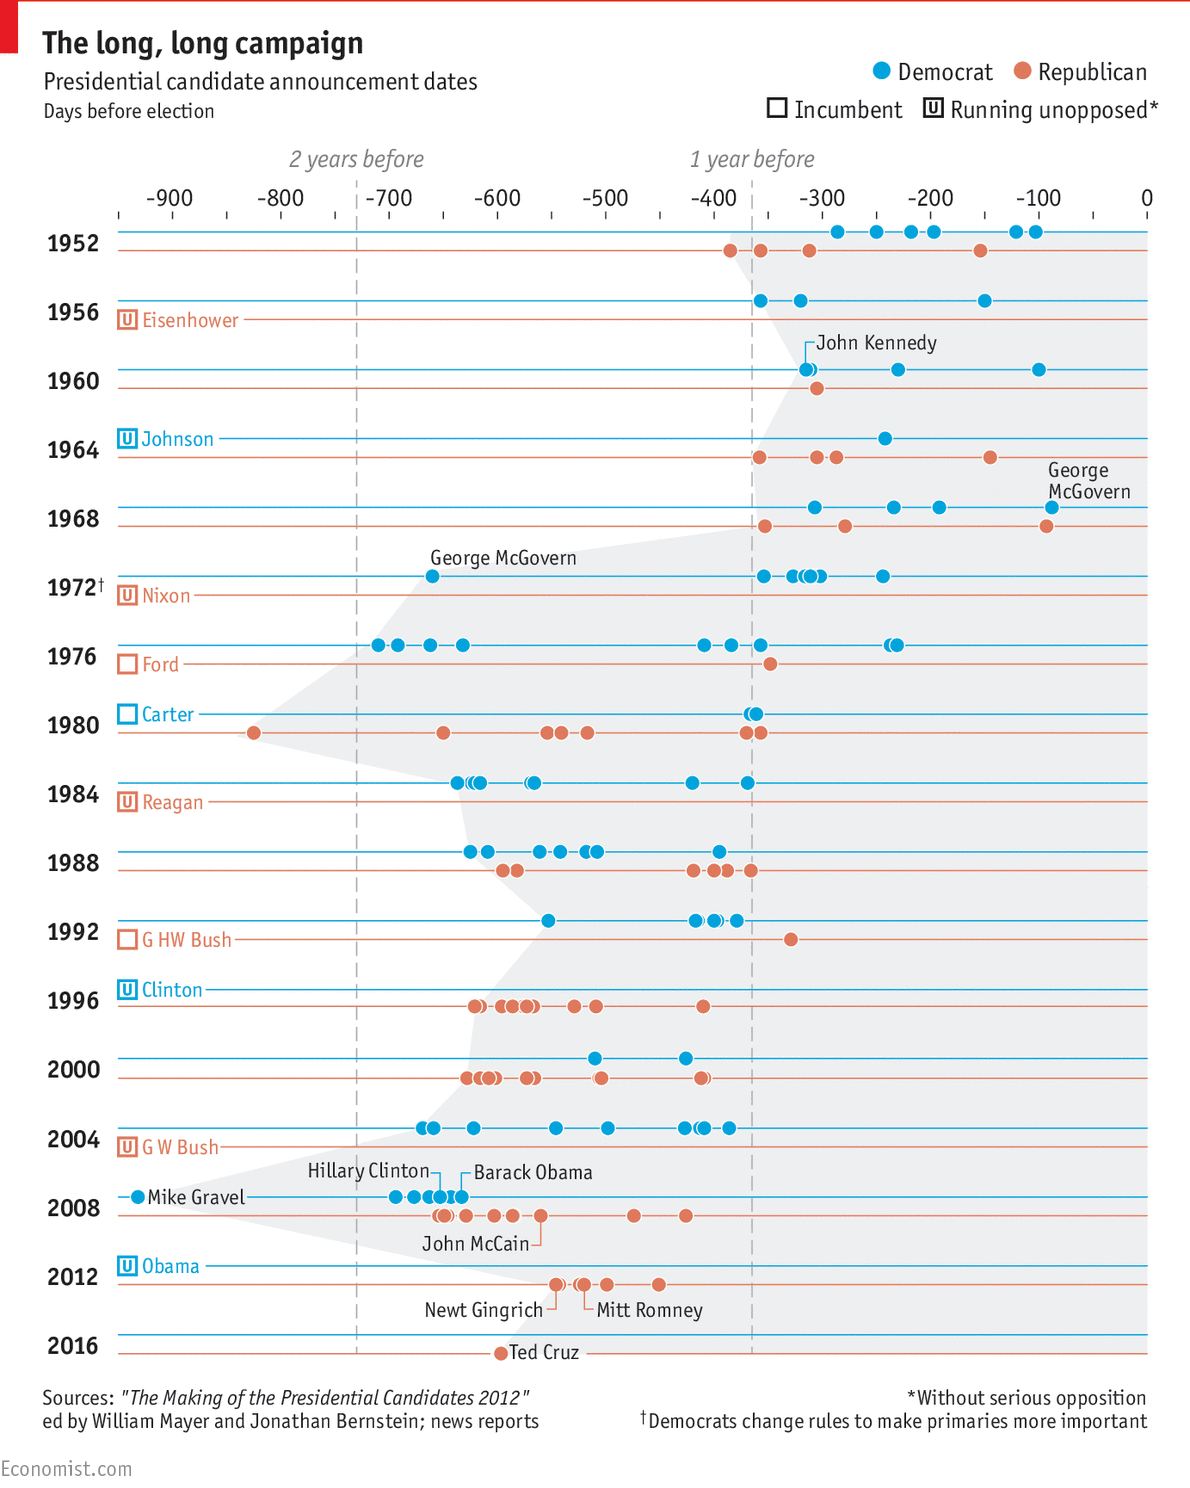 from http://www.economist.com/blogs/graphicdetail/2015/03/us-presidential-candidate-announcements